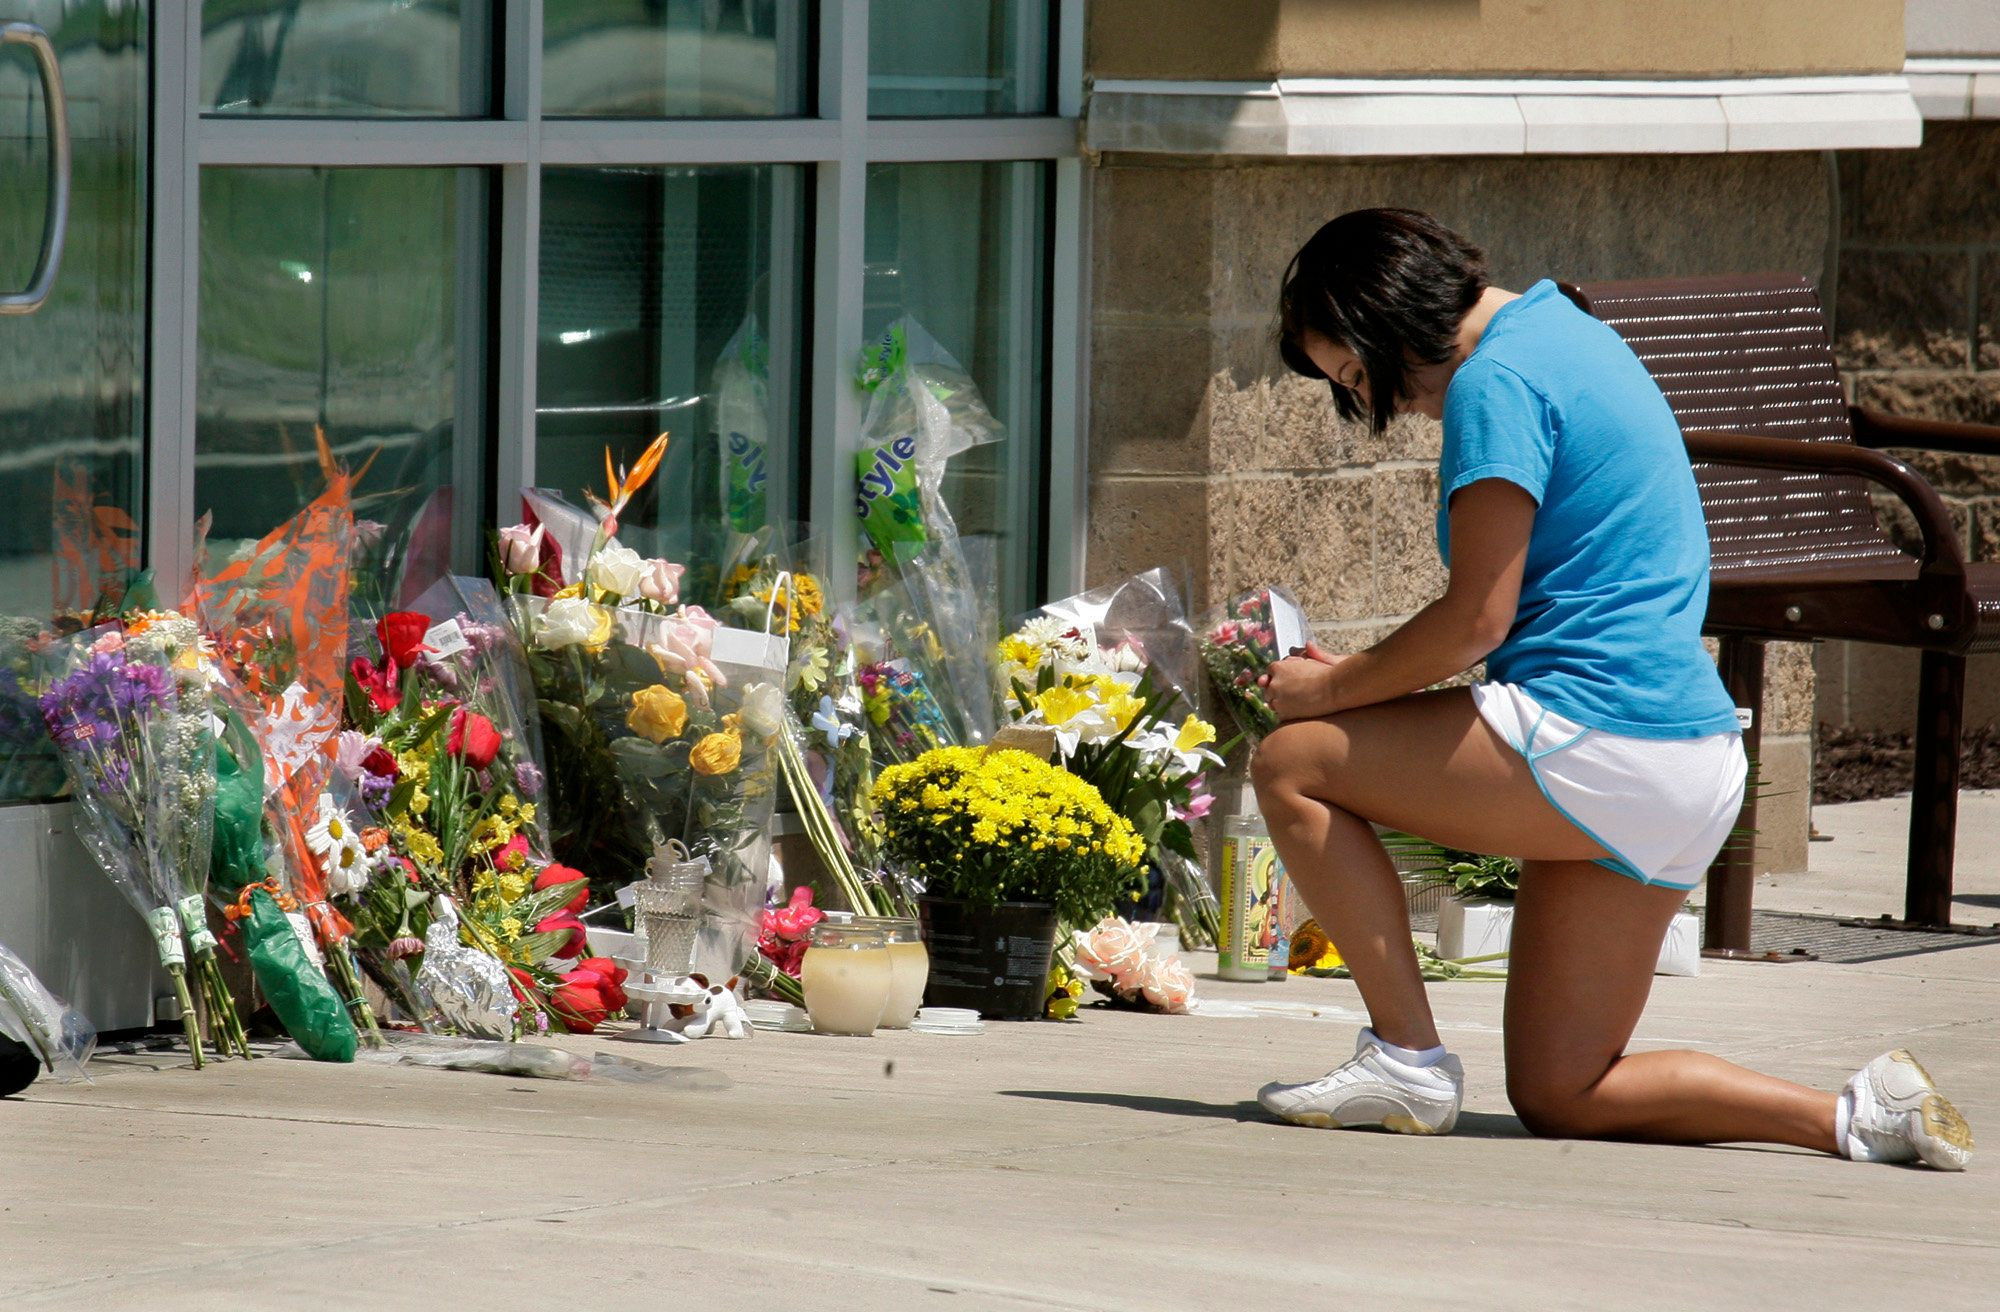 A woman places flowers outside an LA Fitness in Collier Township, Pennsylvania, on Aug. 6, 2009, after George Sodini&nbs